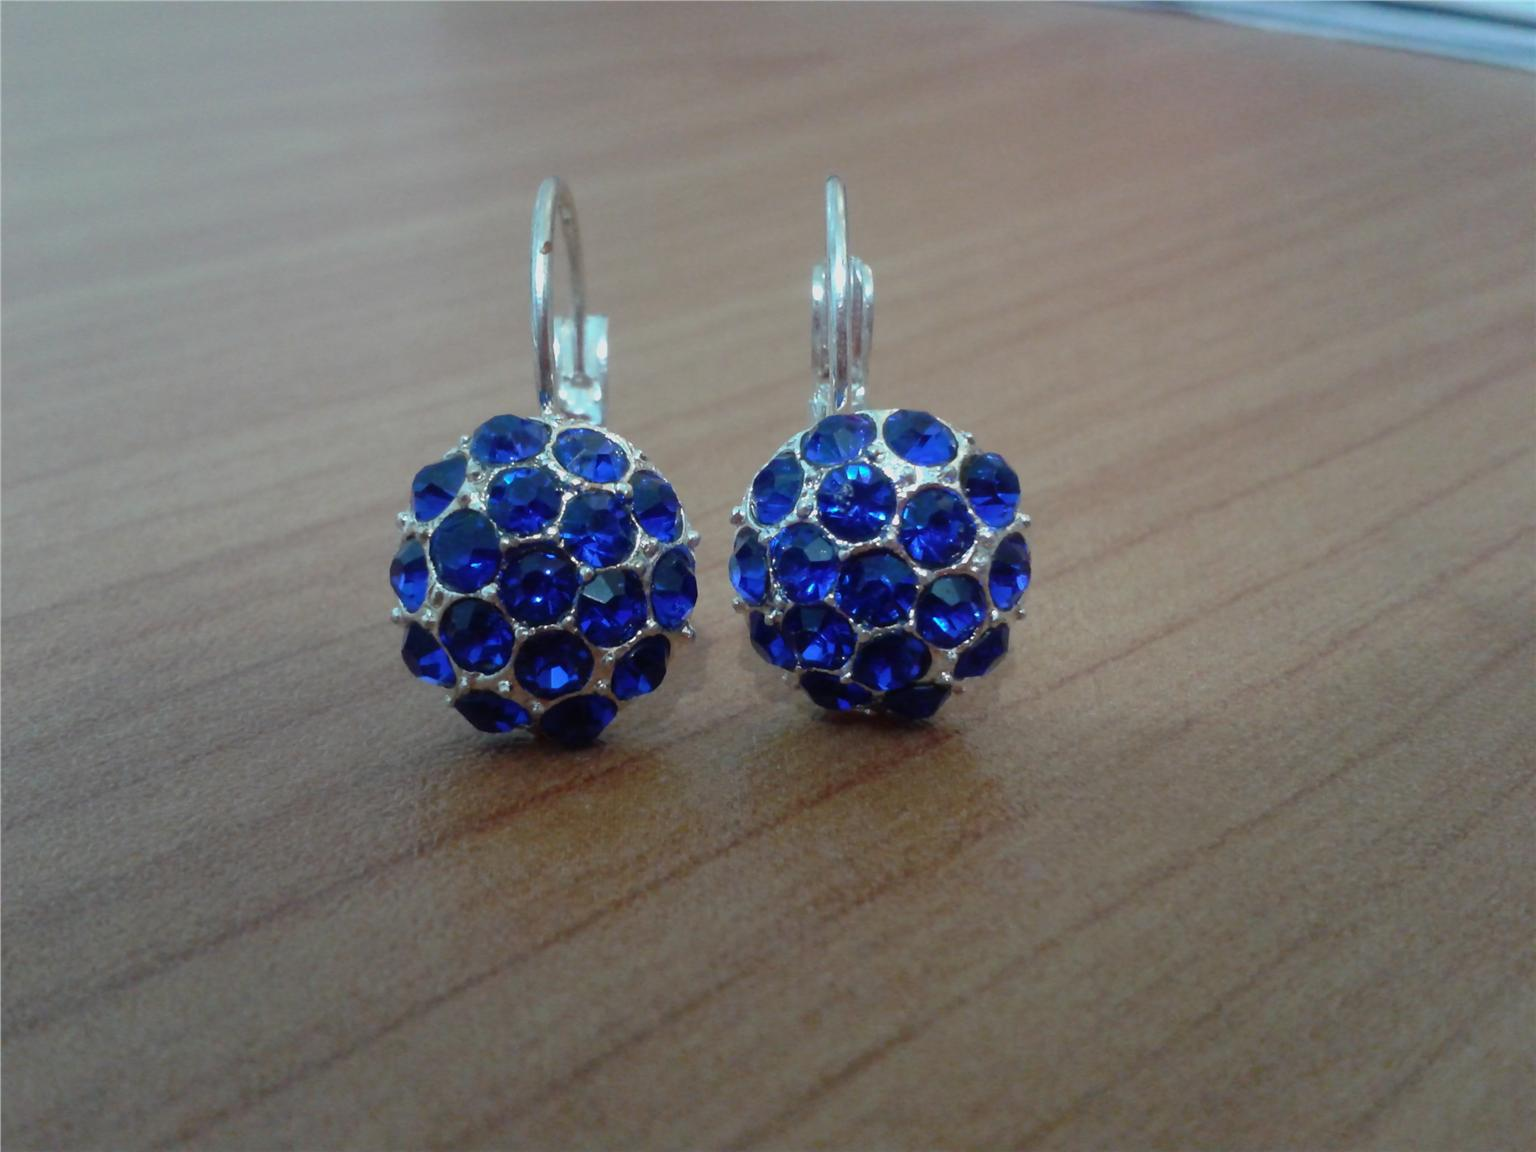 EARRINGS - RHINESTONE EARRINGS DARK BLUE